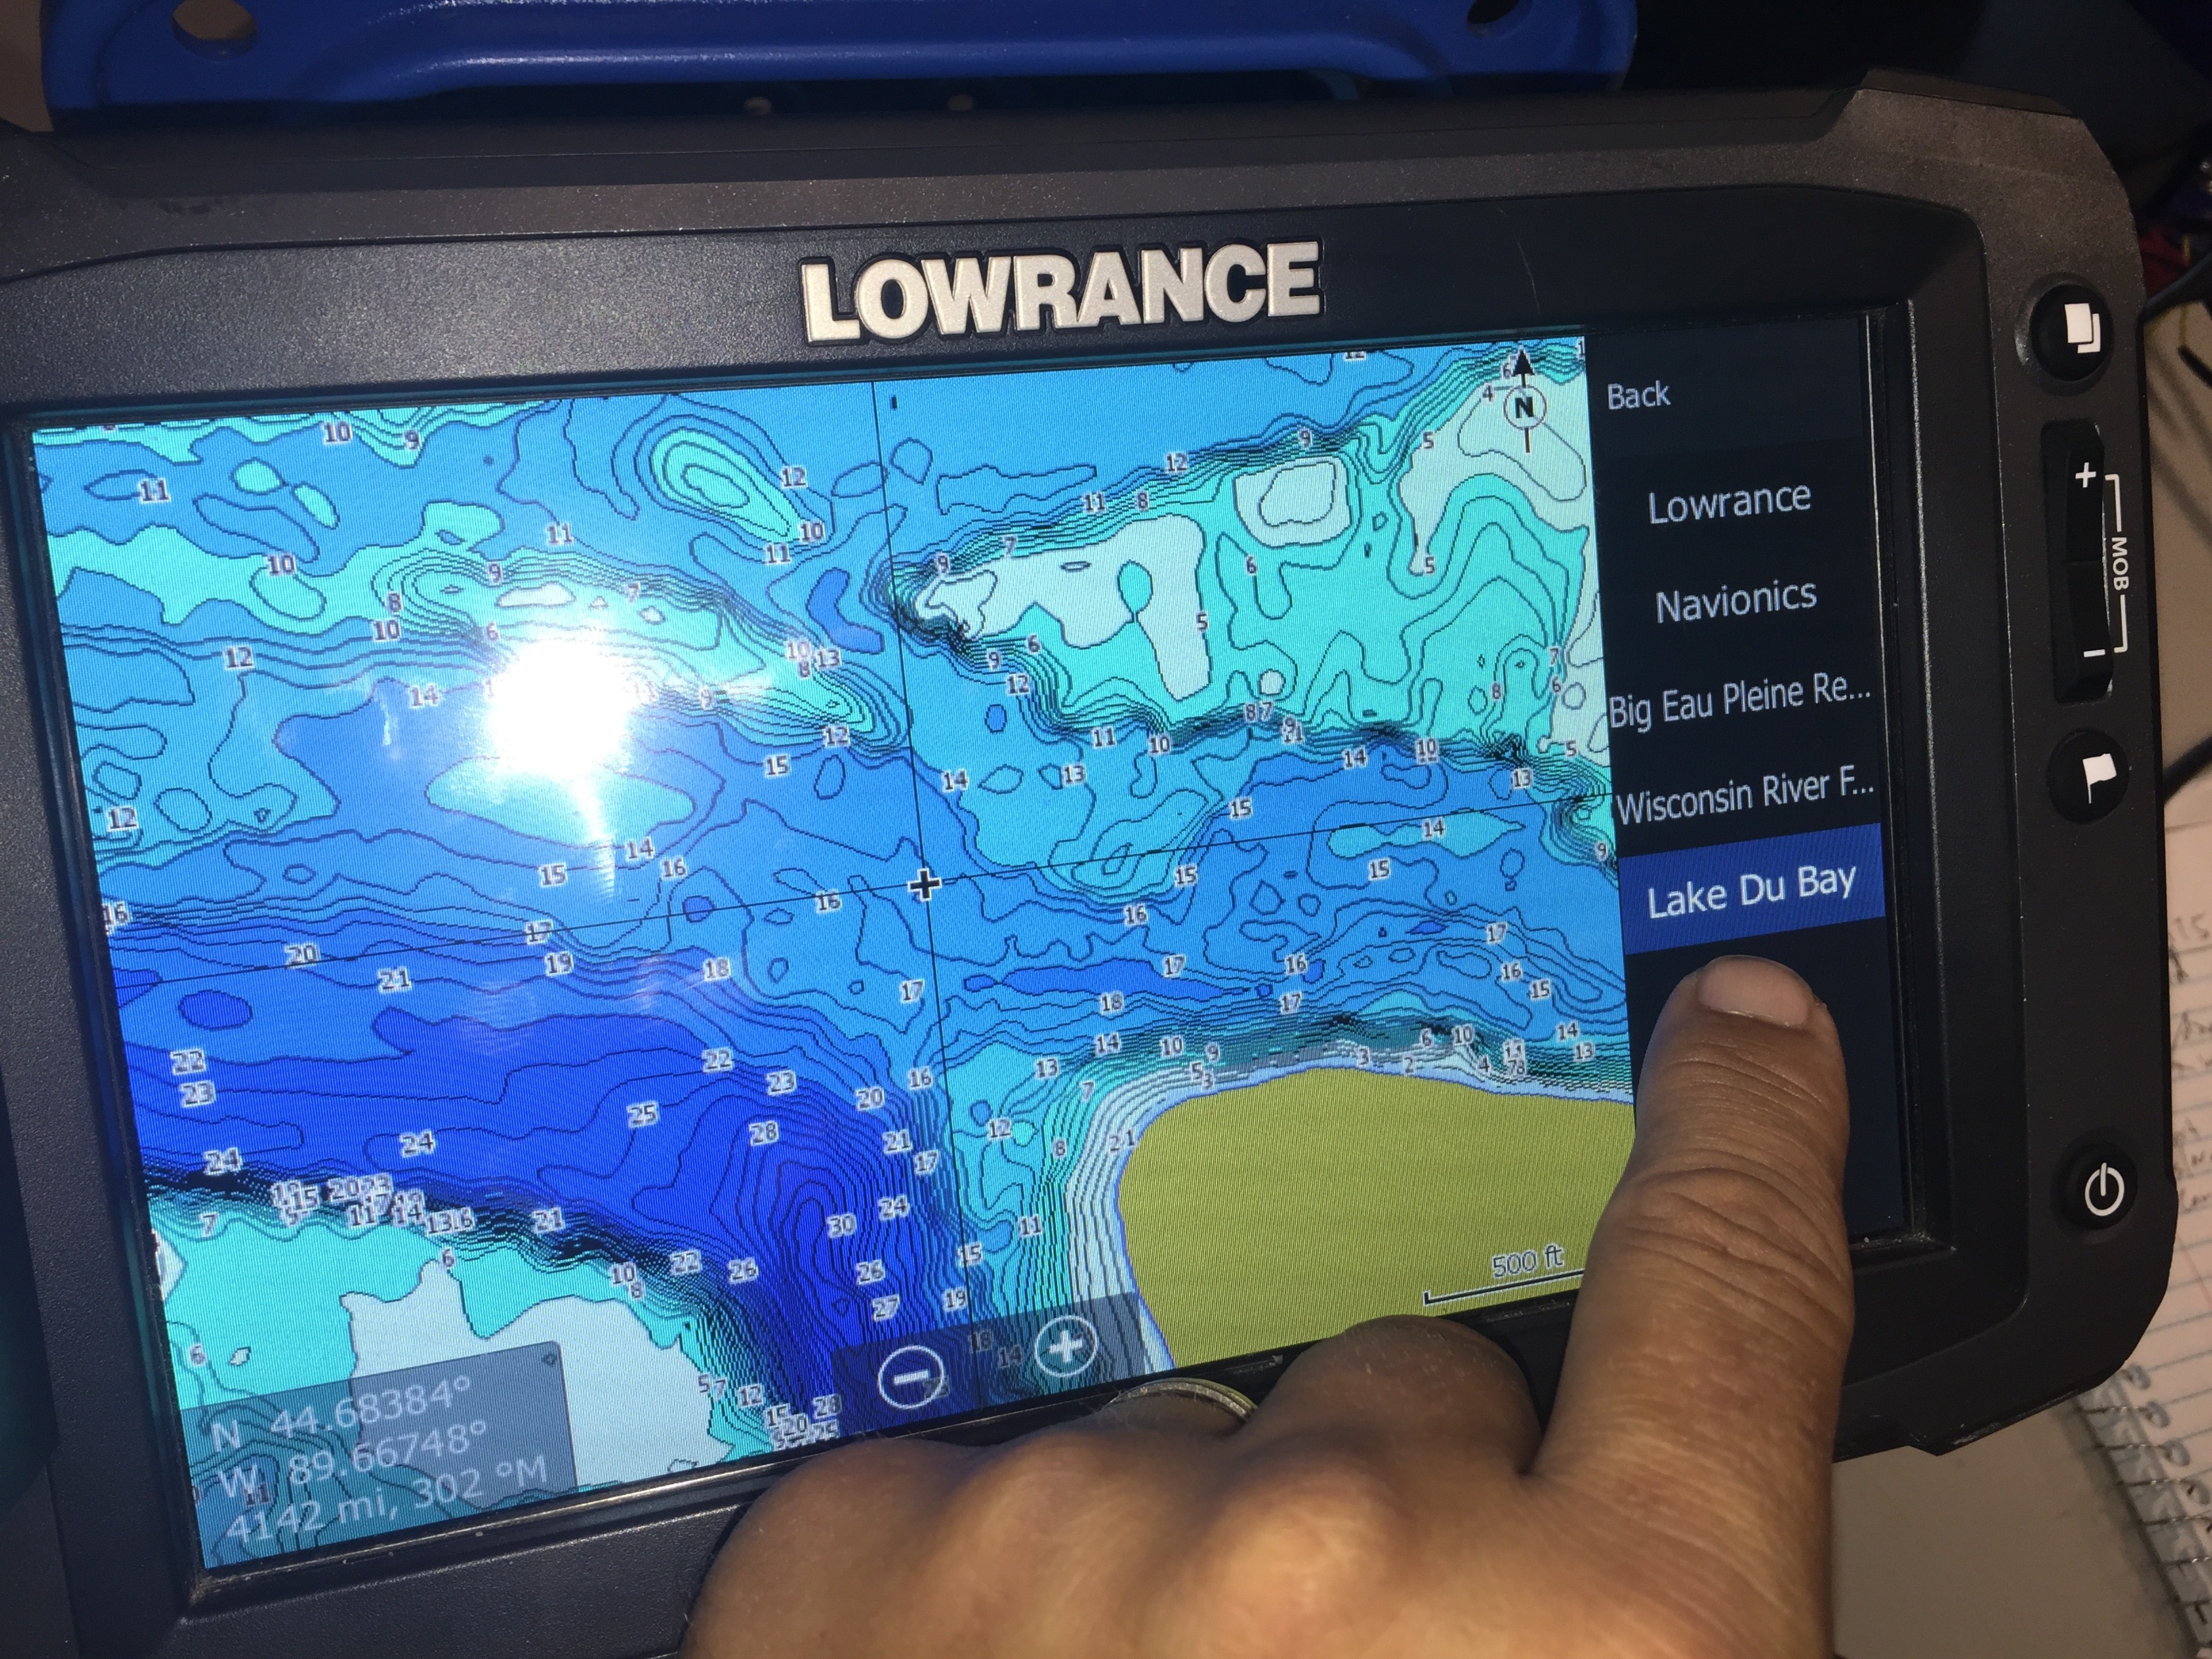 How to use multiple Insight Genesis maps on your sonar/GPS unit (new Insight Maps on